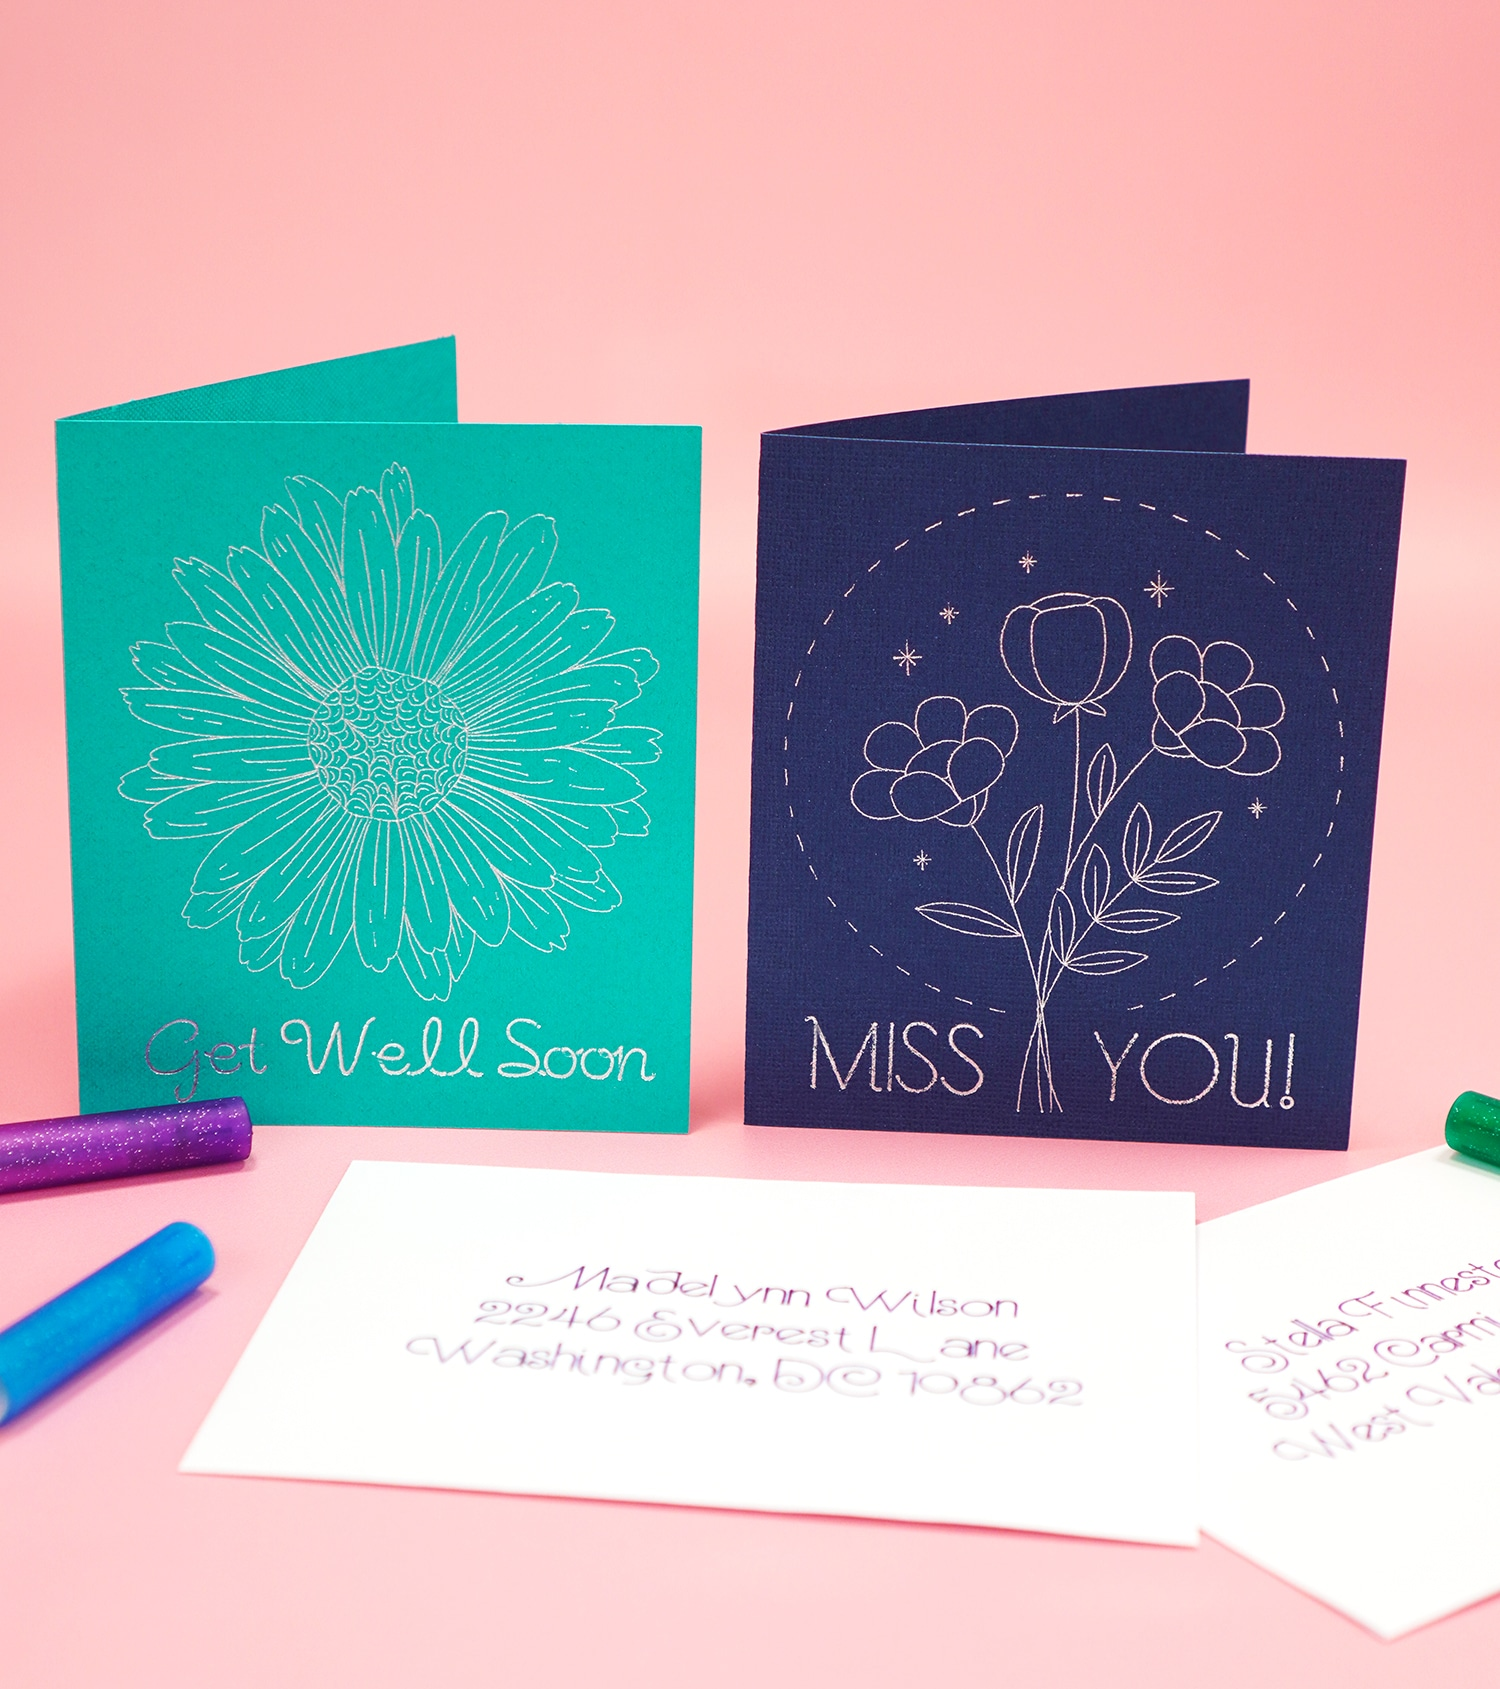 Silver foiled cards on pink background with envelopes